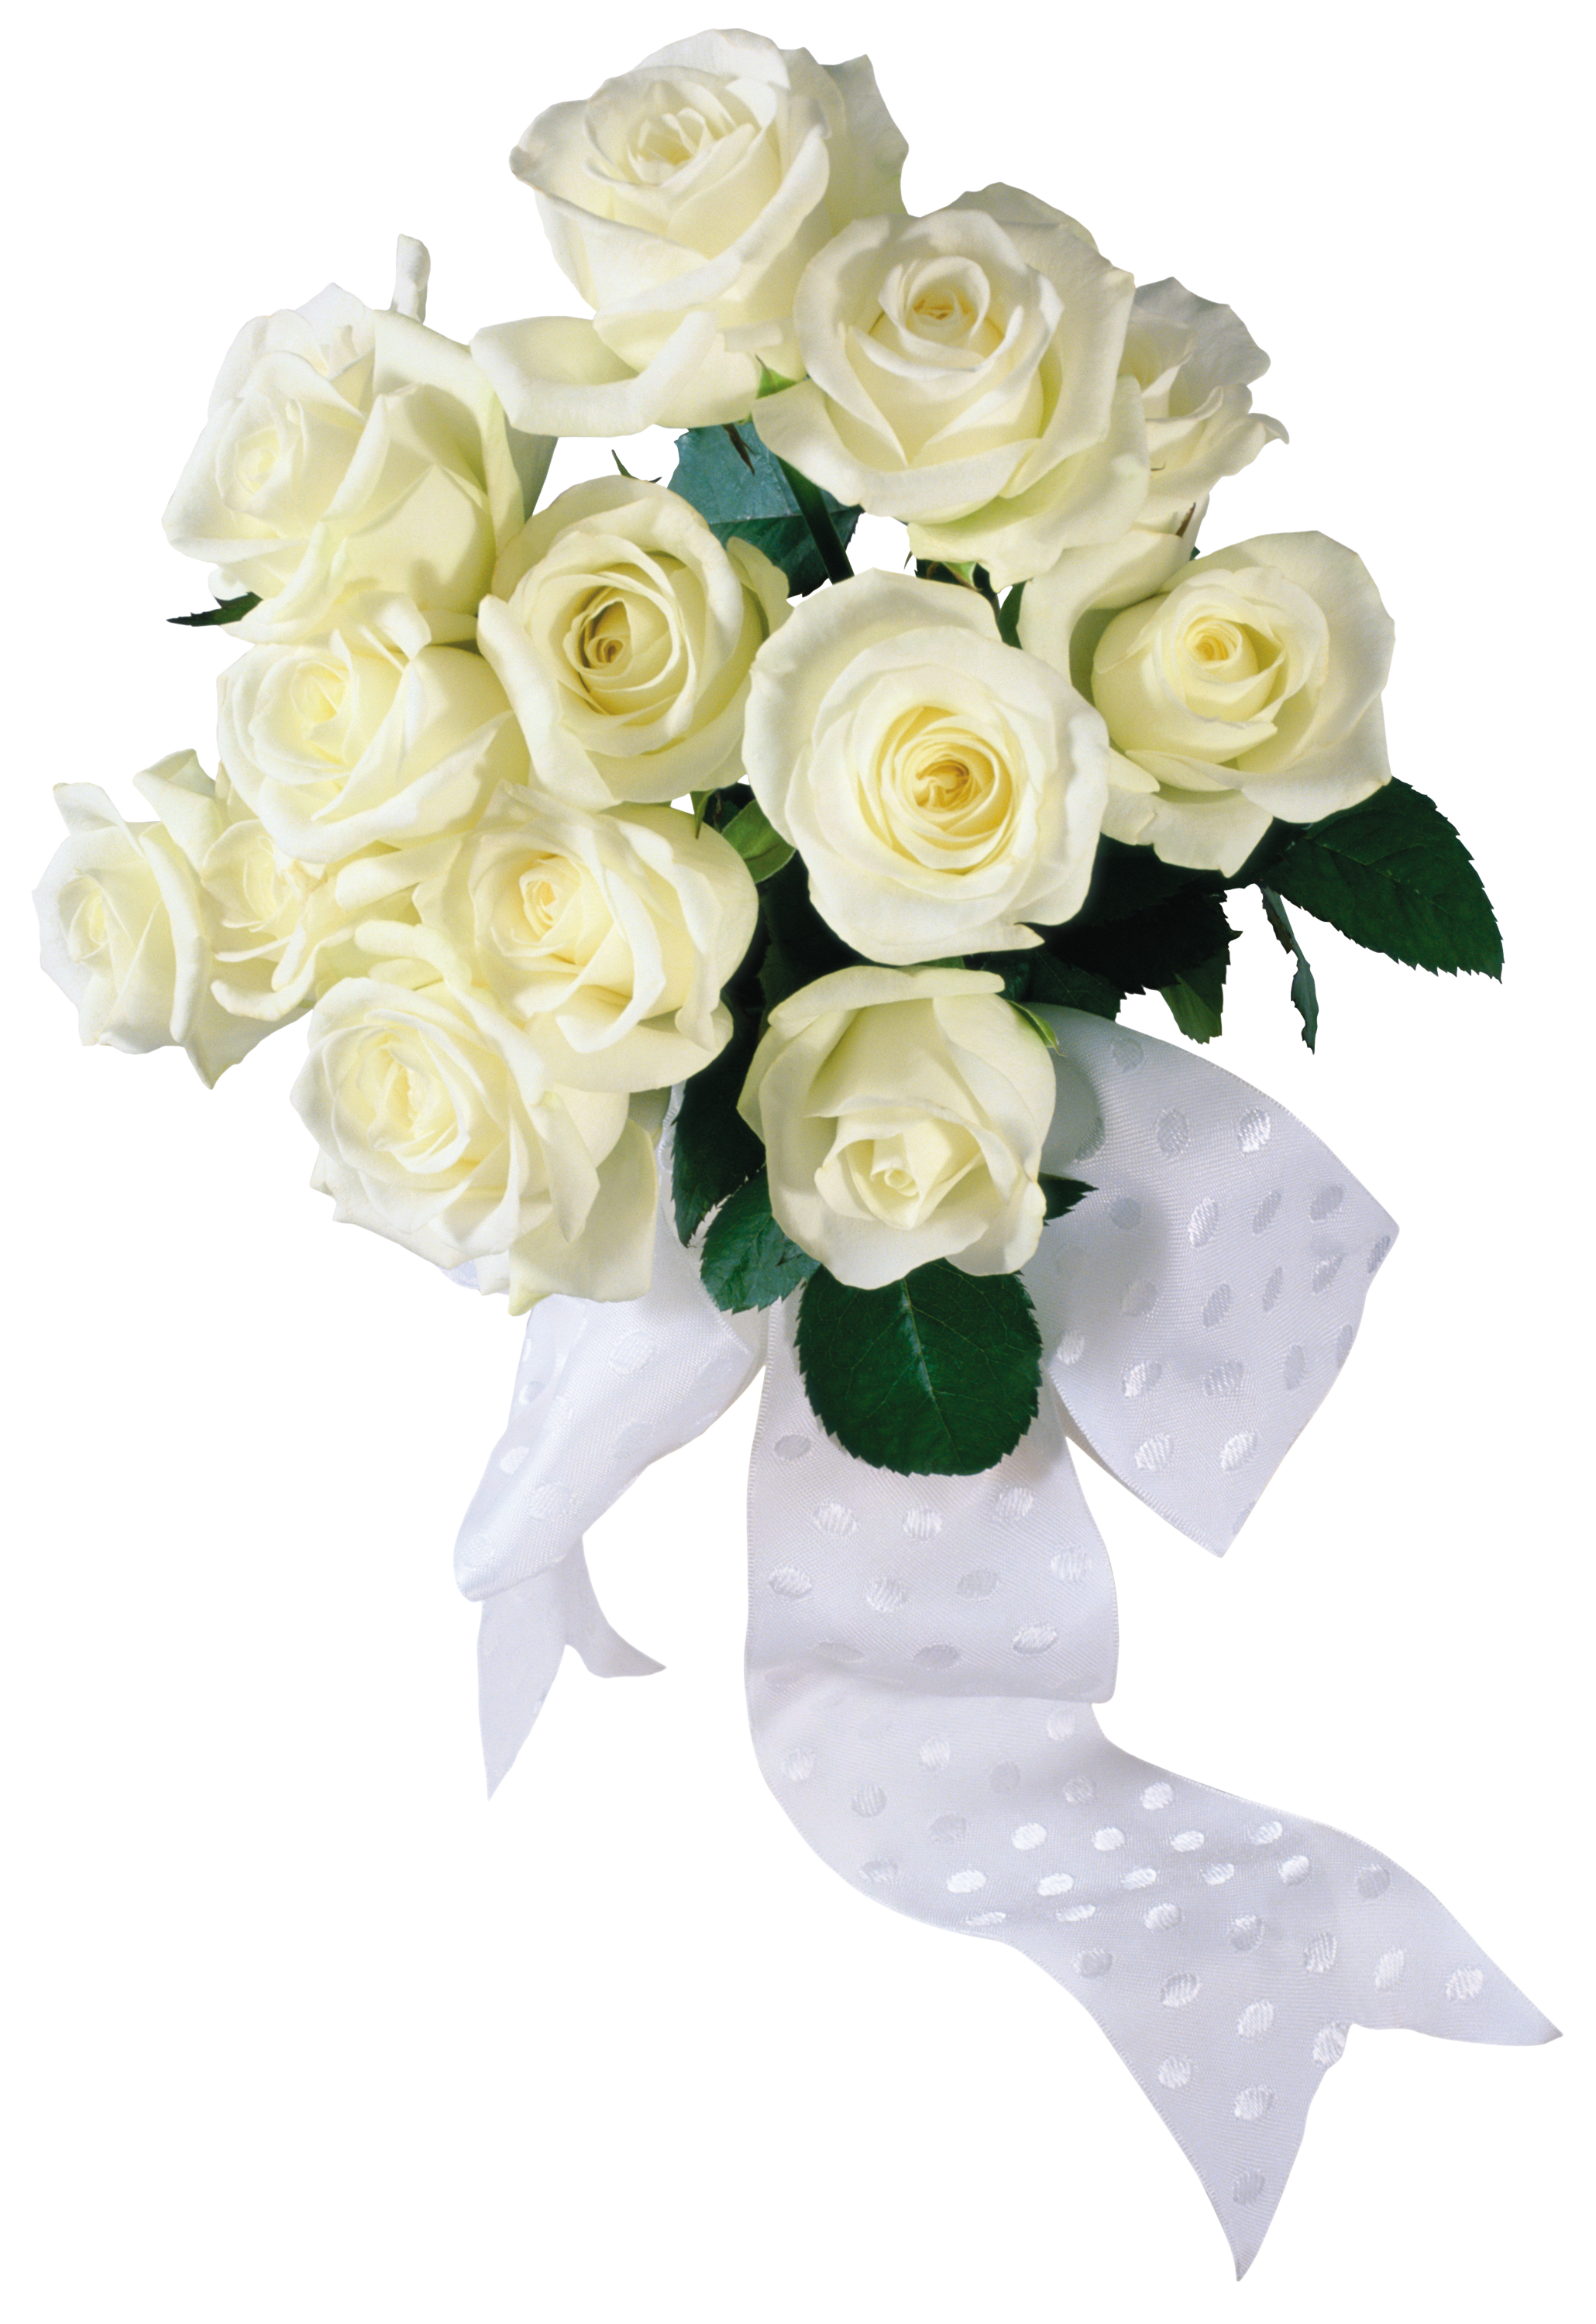 Pin by susie king on transparent images pinterest white roses just married white roses cgi white people wedding izmirmasajfo Images